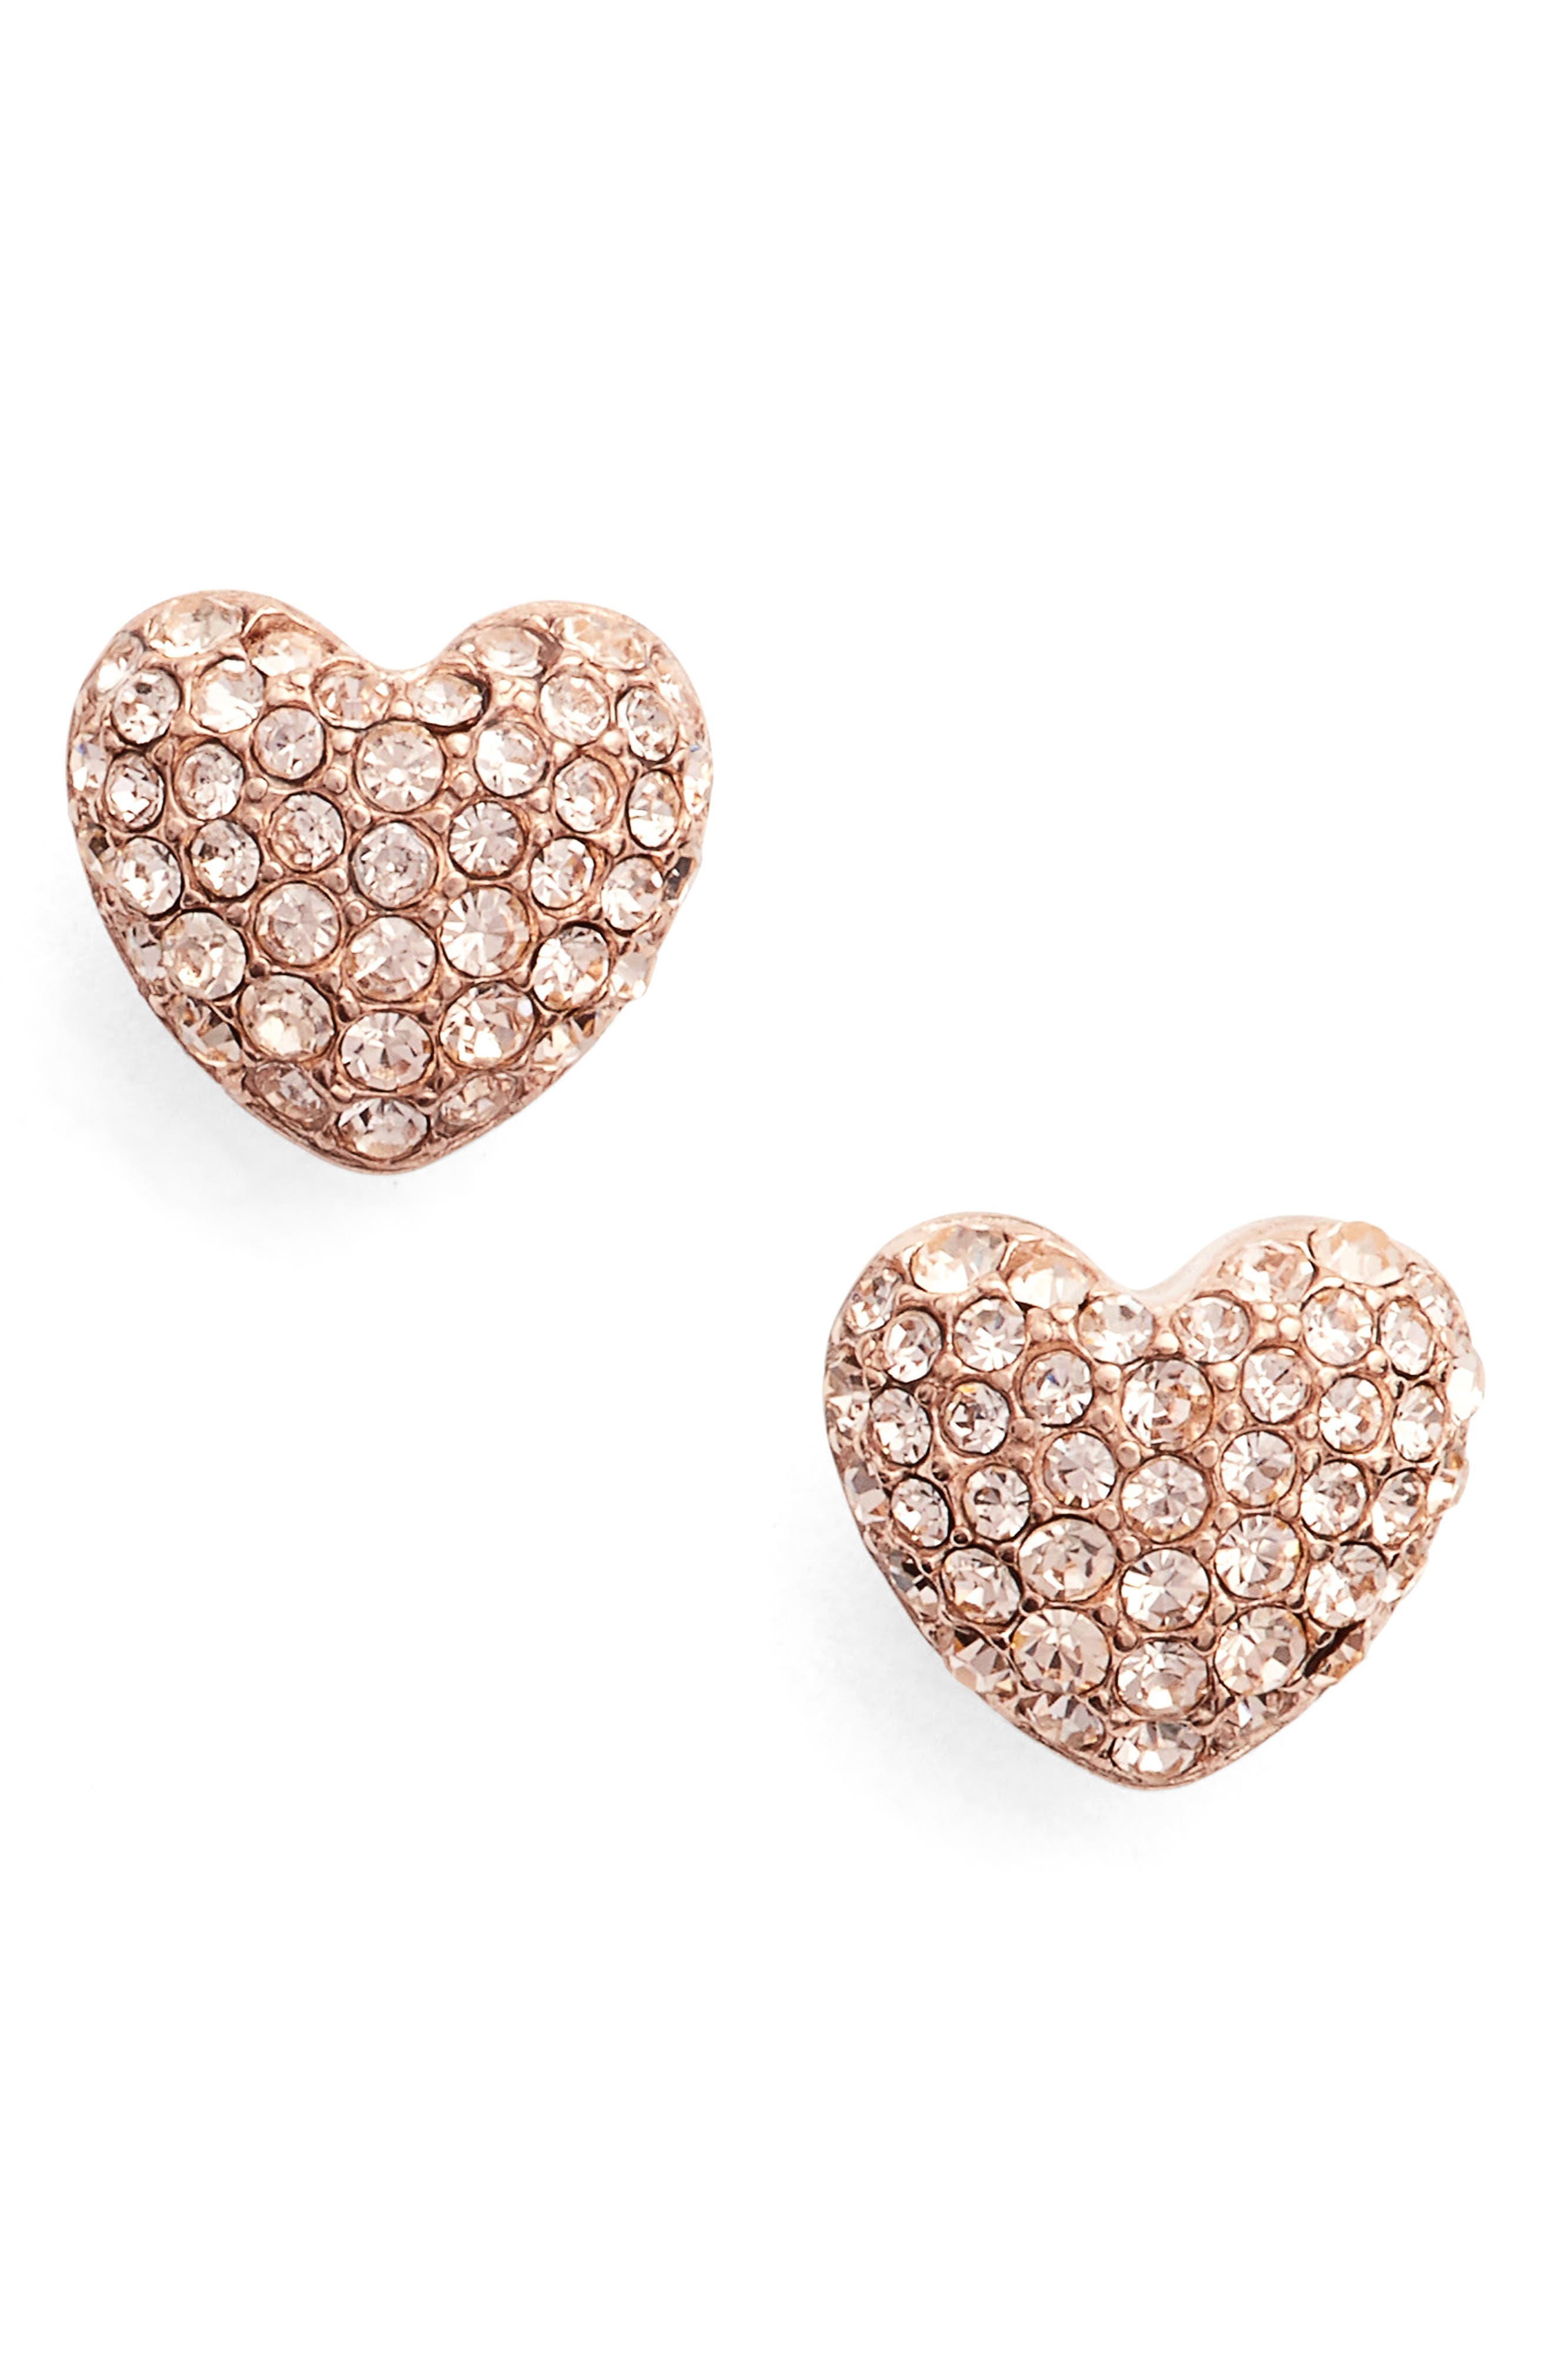 Heart Stud Earrings,                         Main,                         color, Rose Gold